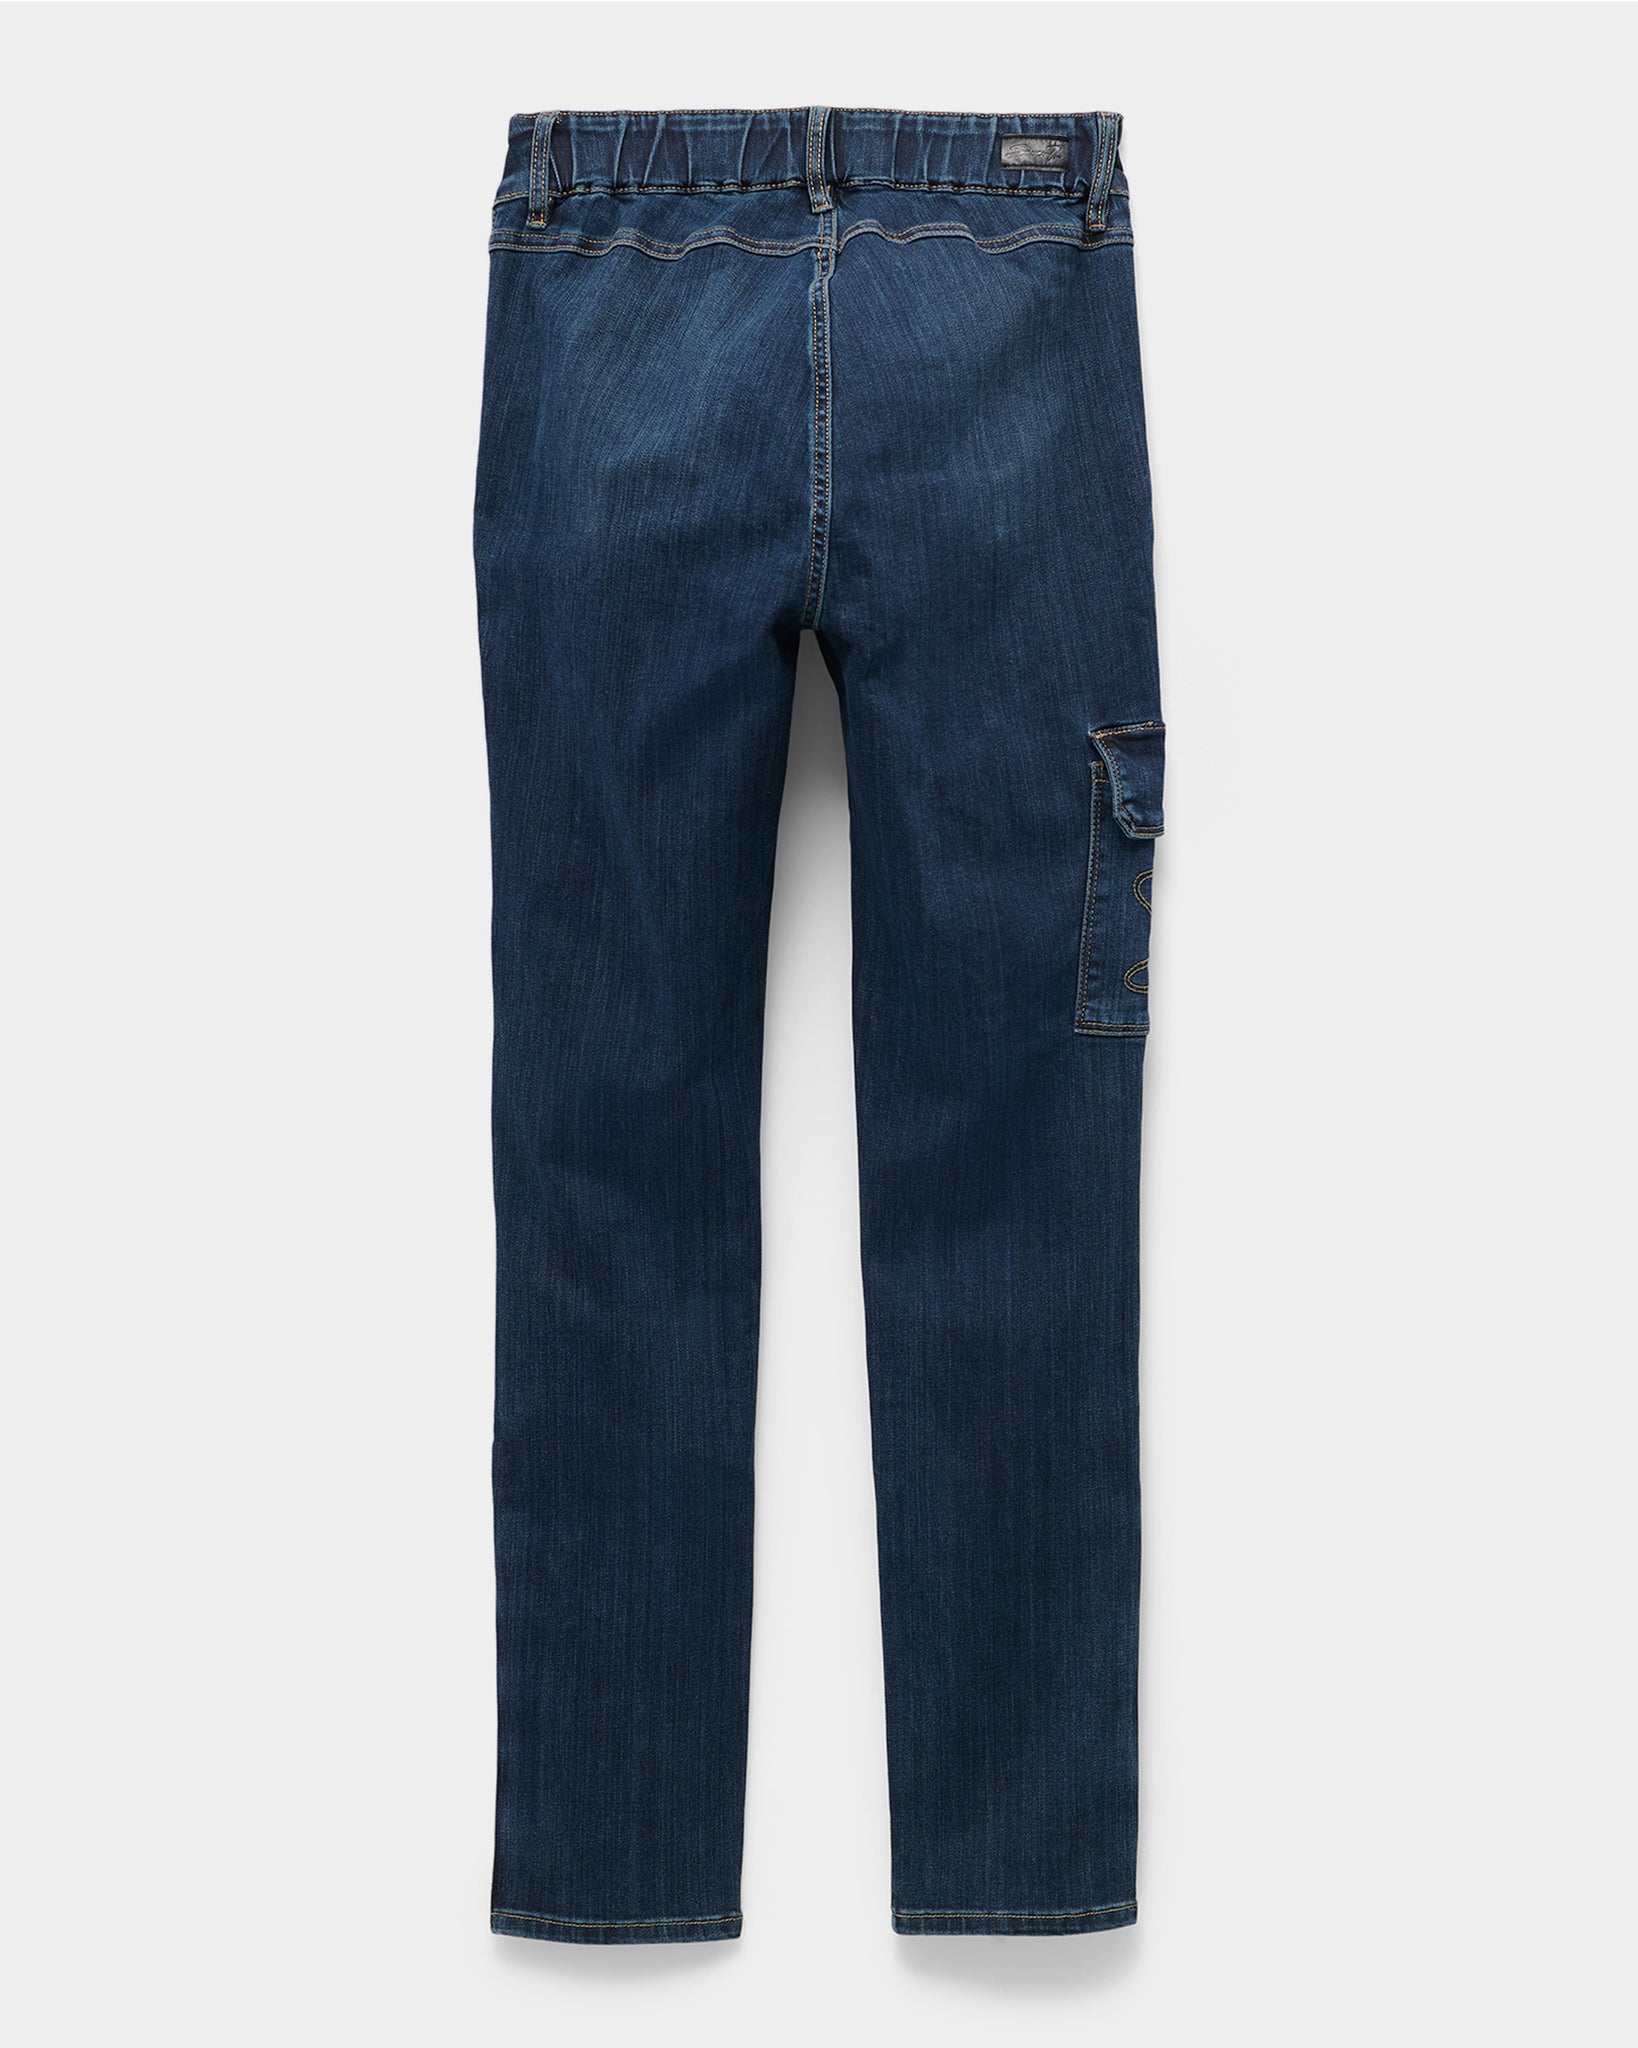 Seated Tummyless Skinny Cut Jean